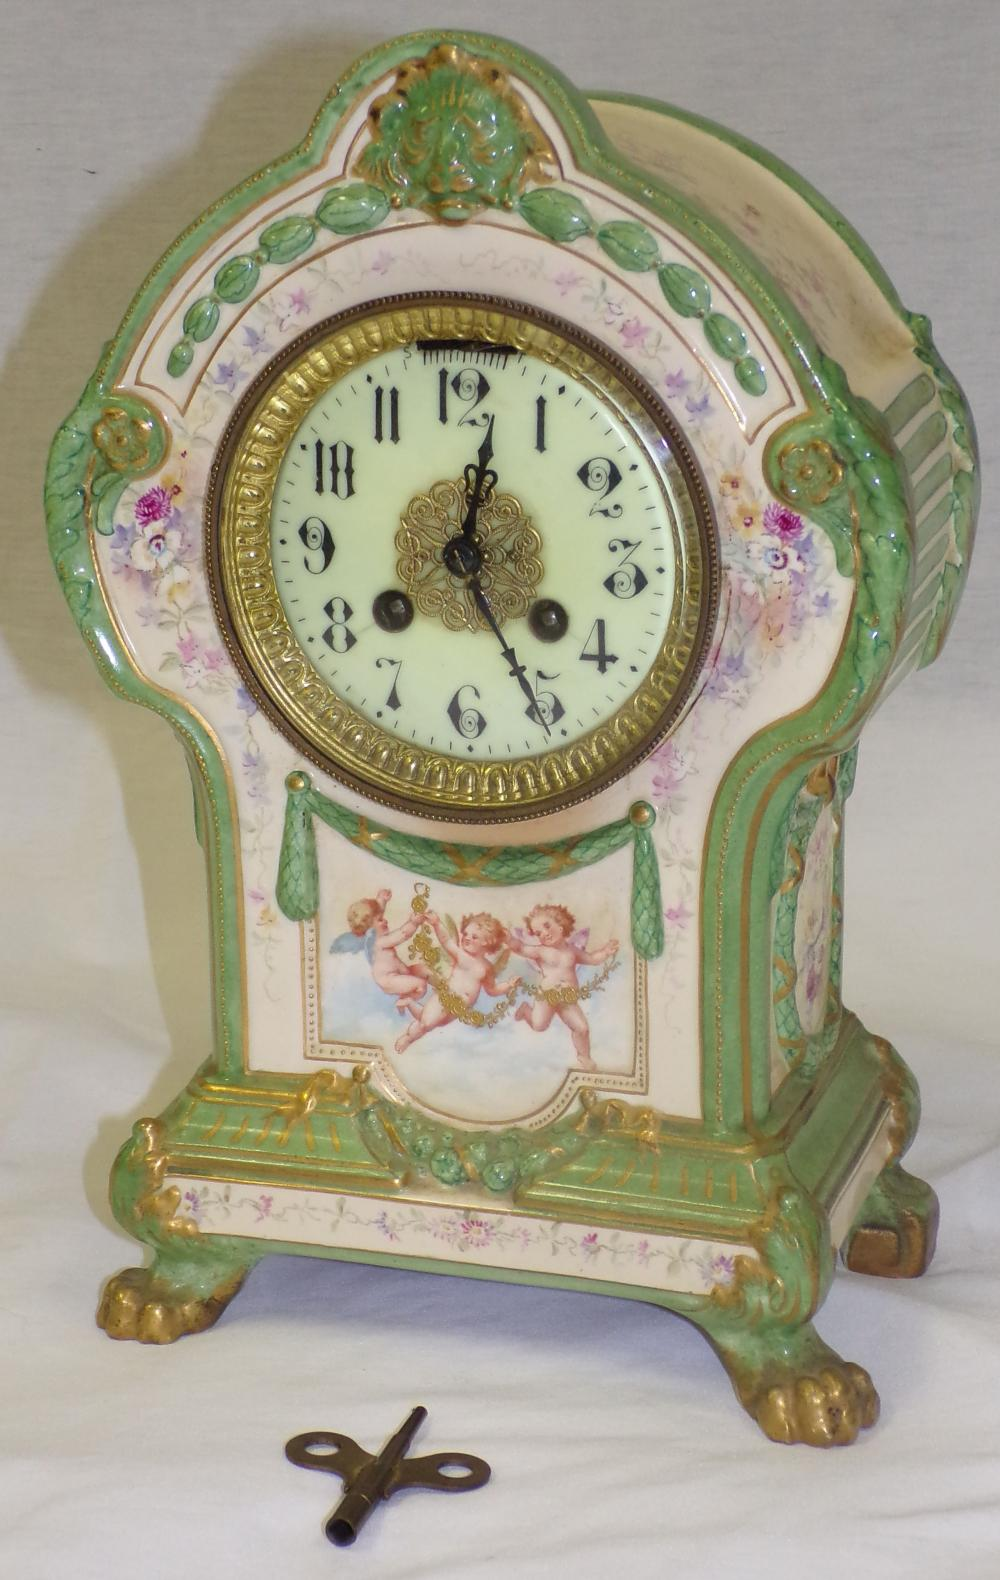 China clock decorated in ivory & green, decorated with cherubs & floral design, dome top ending in paw feet,  French movement, no maker indicated, no pendulum